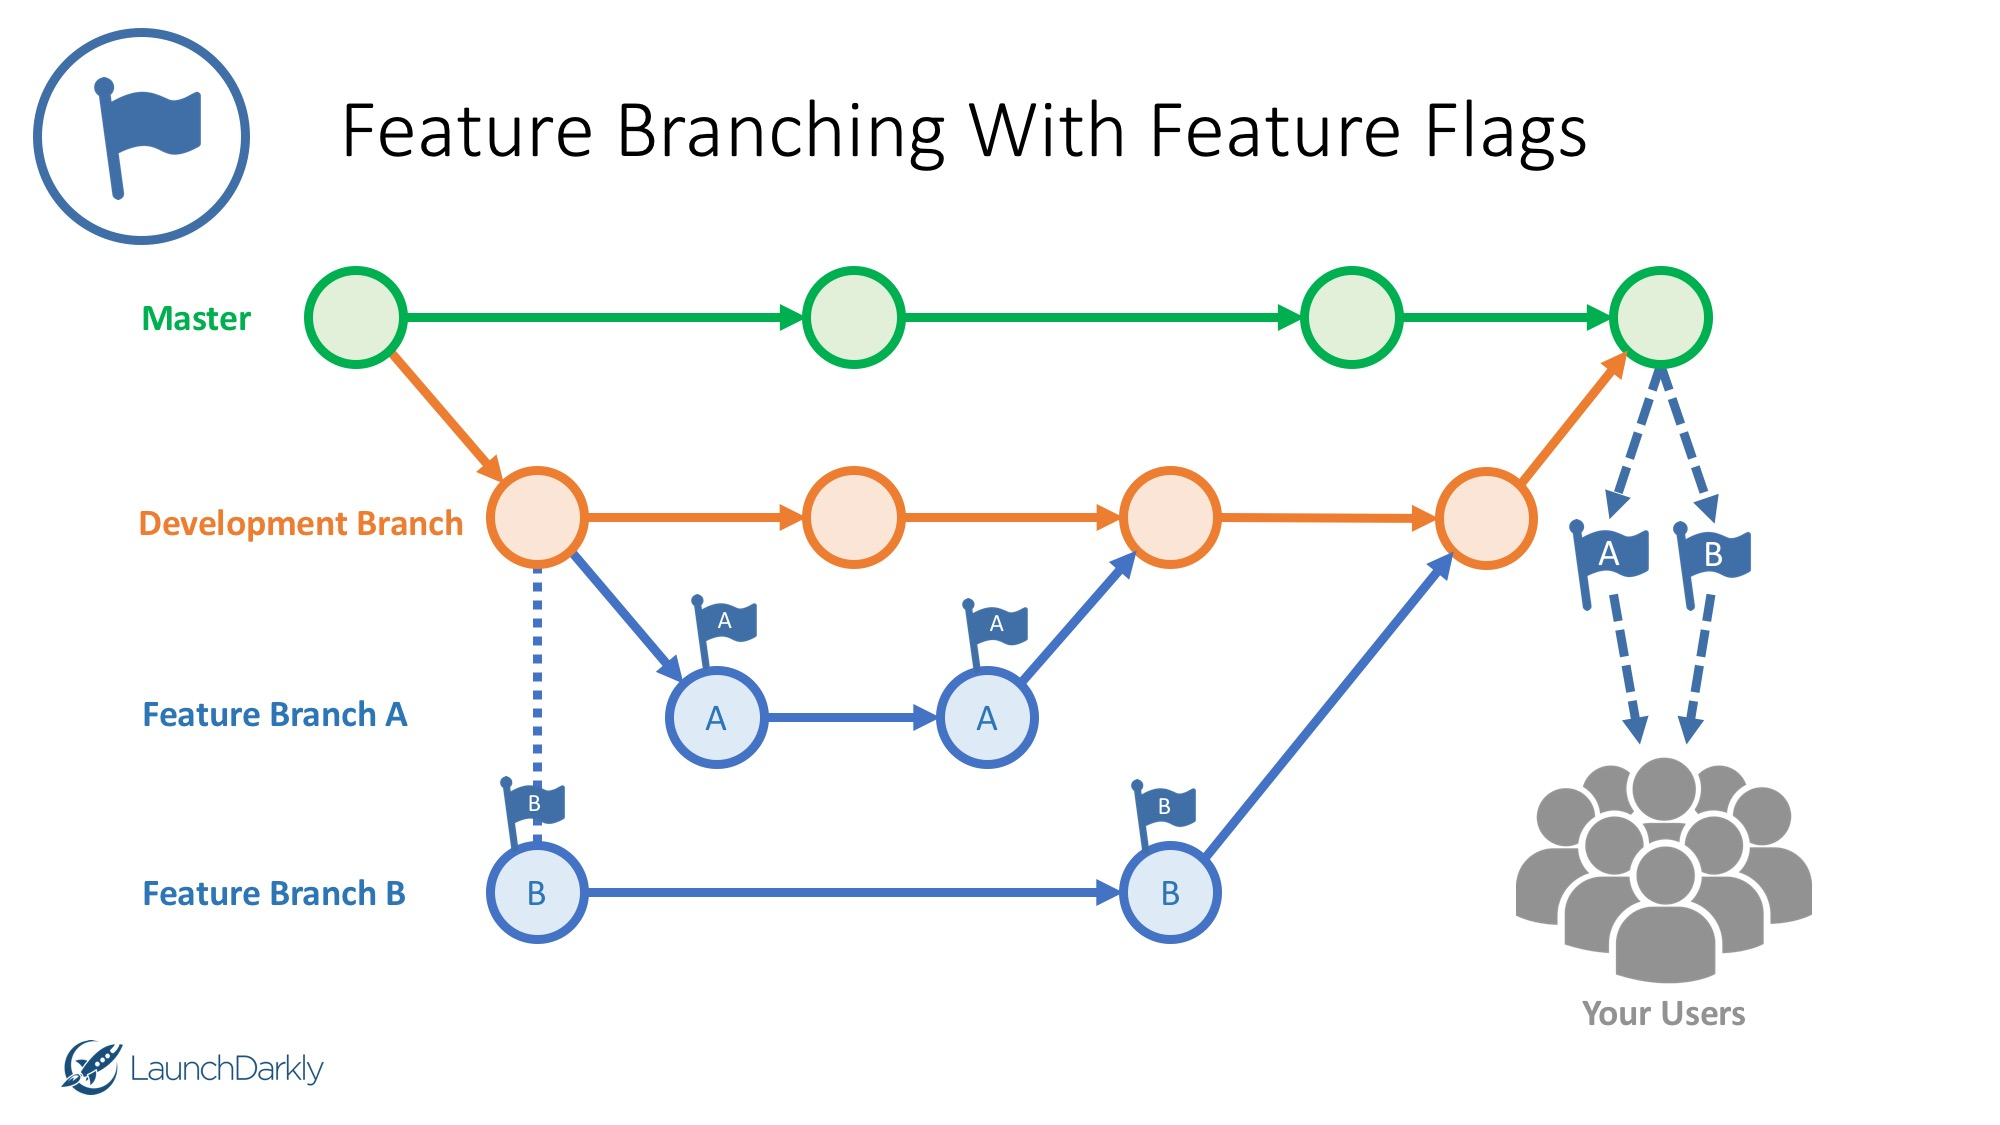 Feature Branching with Feature Flags LaunchDarkly